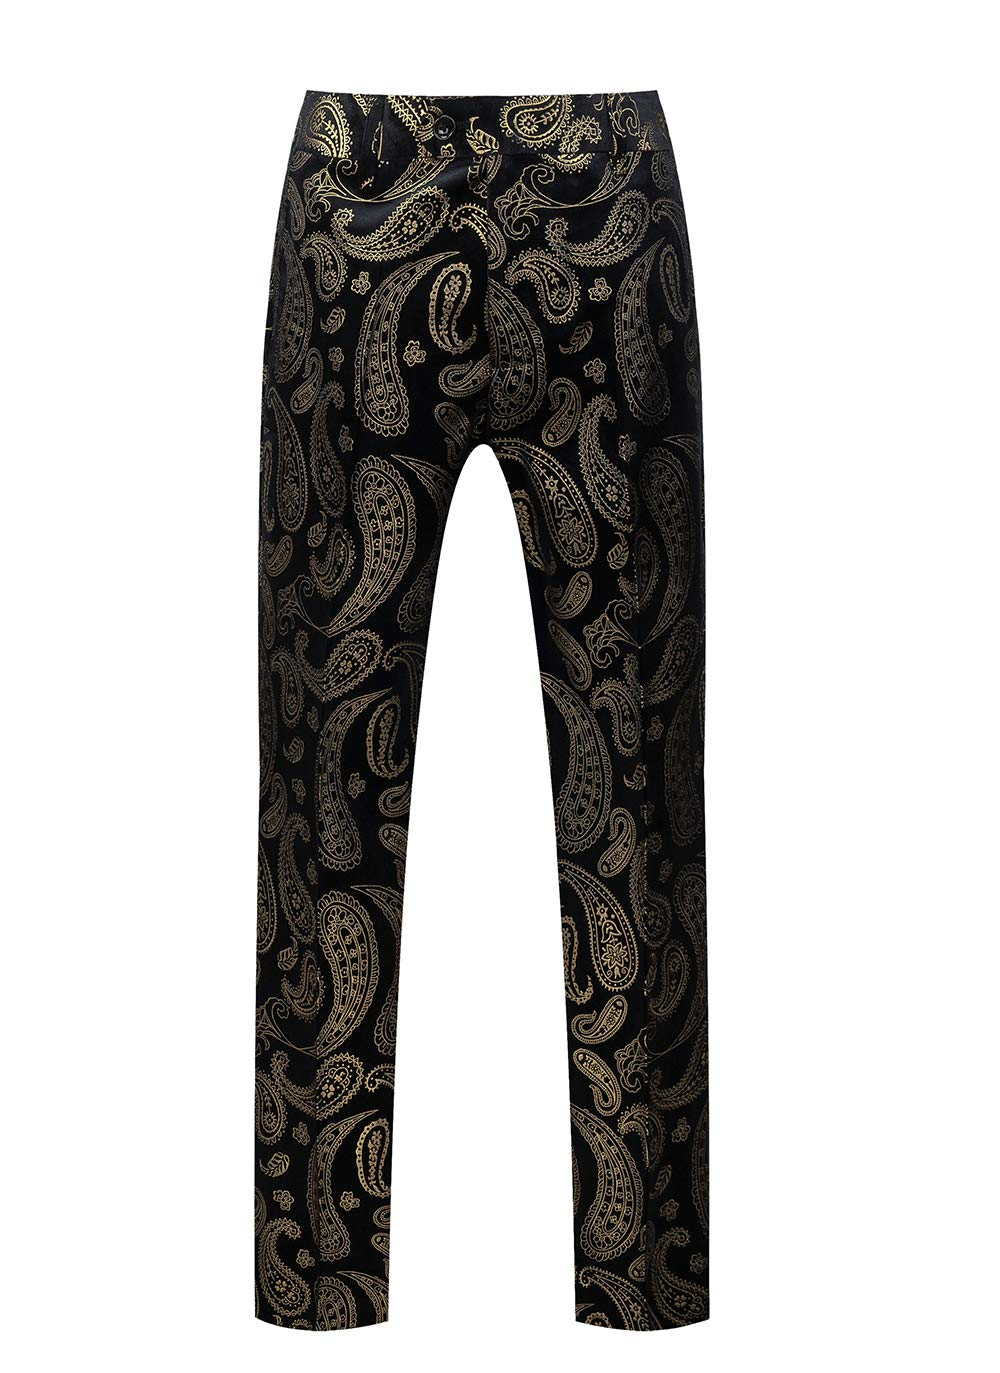 Mens Slim Fit Floral Casual Stretch Suit Pants Party Prom US 33 (Label Size XL) Printed by UNINUKOO